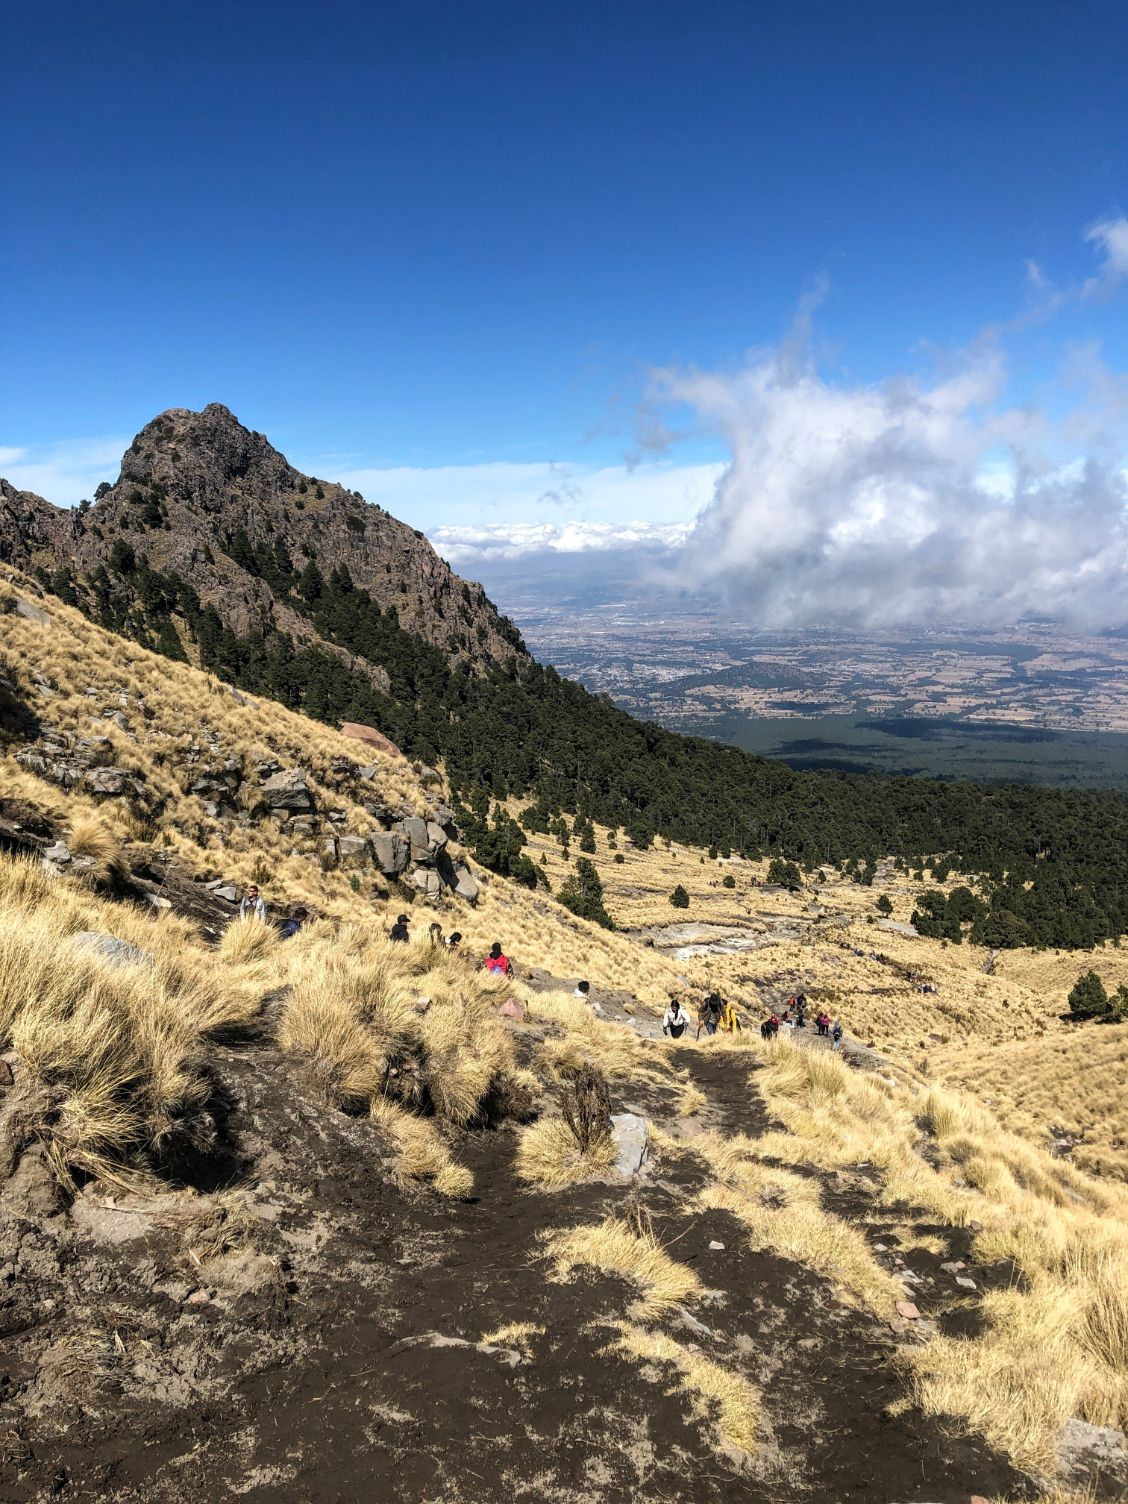 View of Malinche National Park from halfway up Malinche volcano